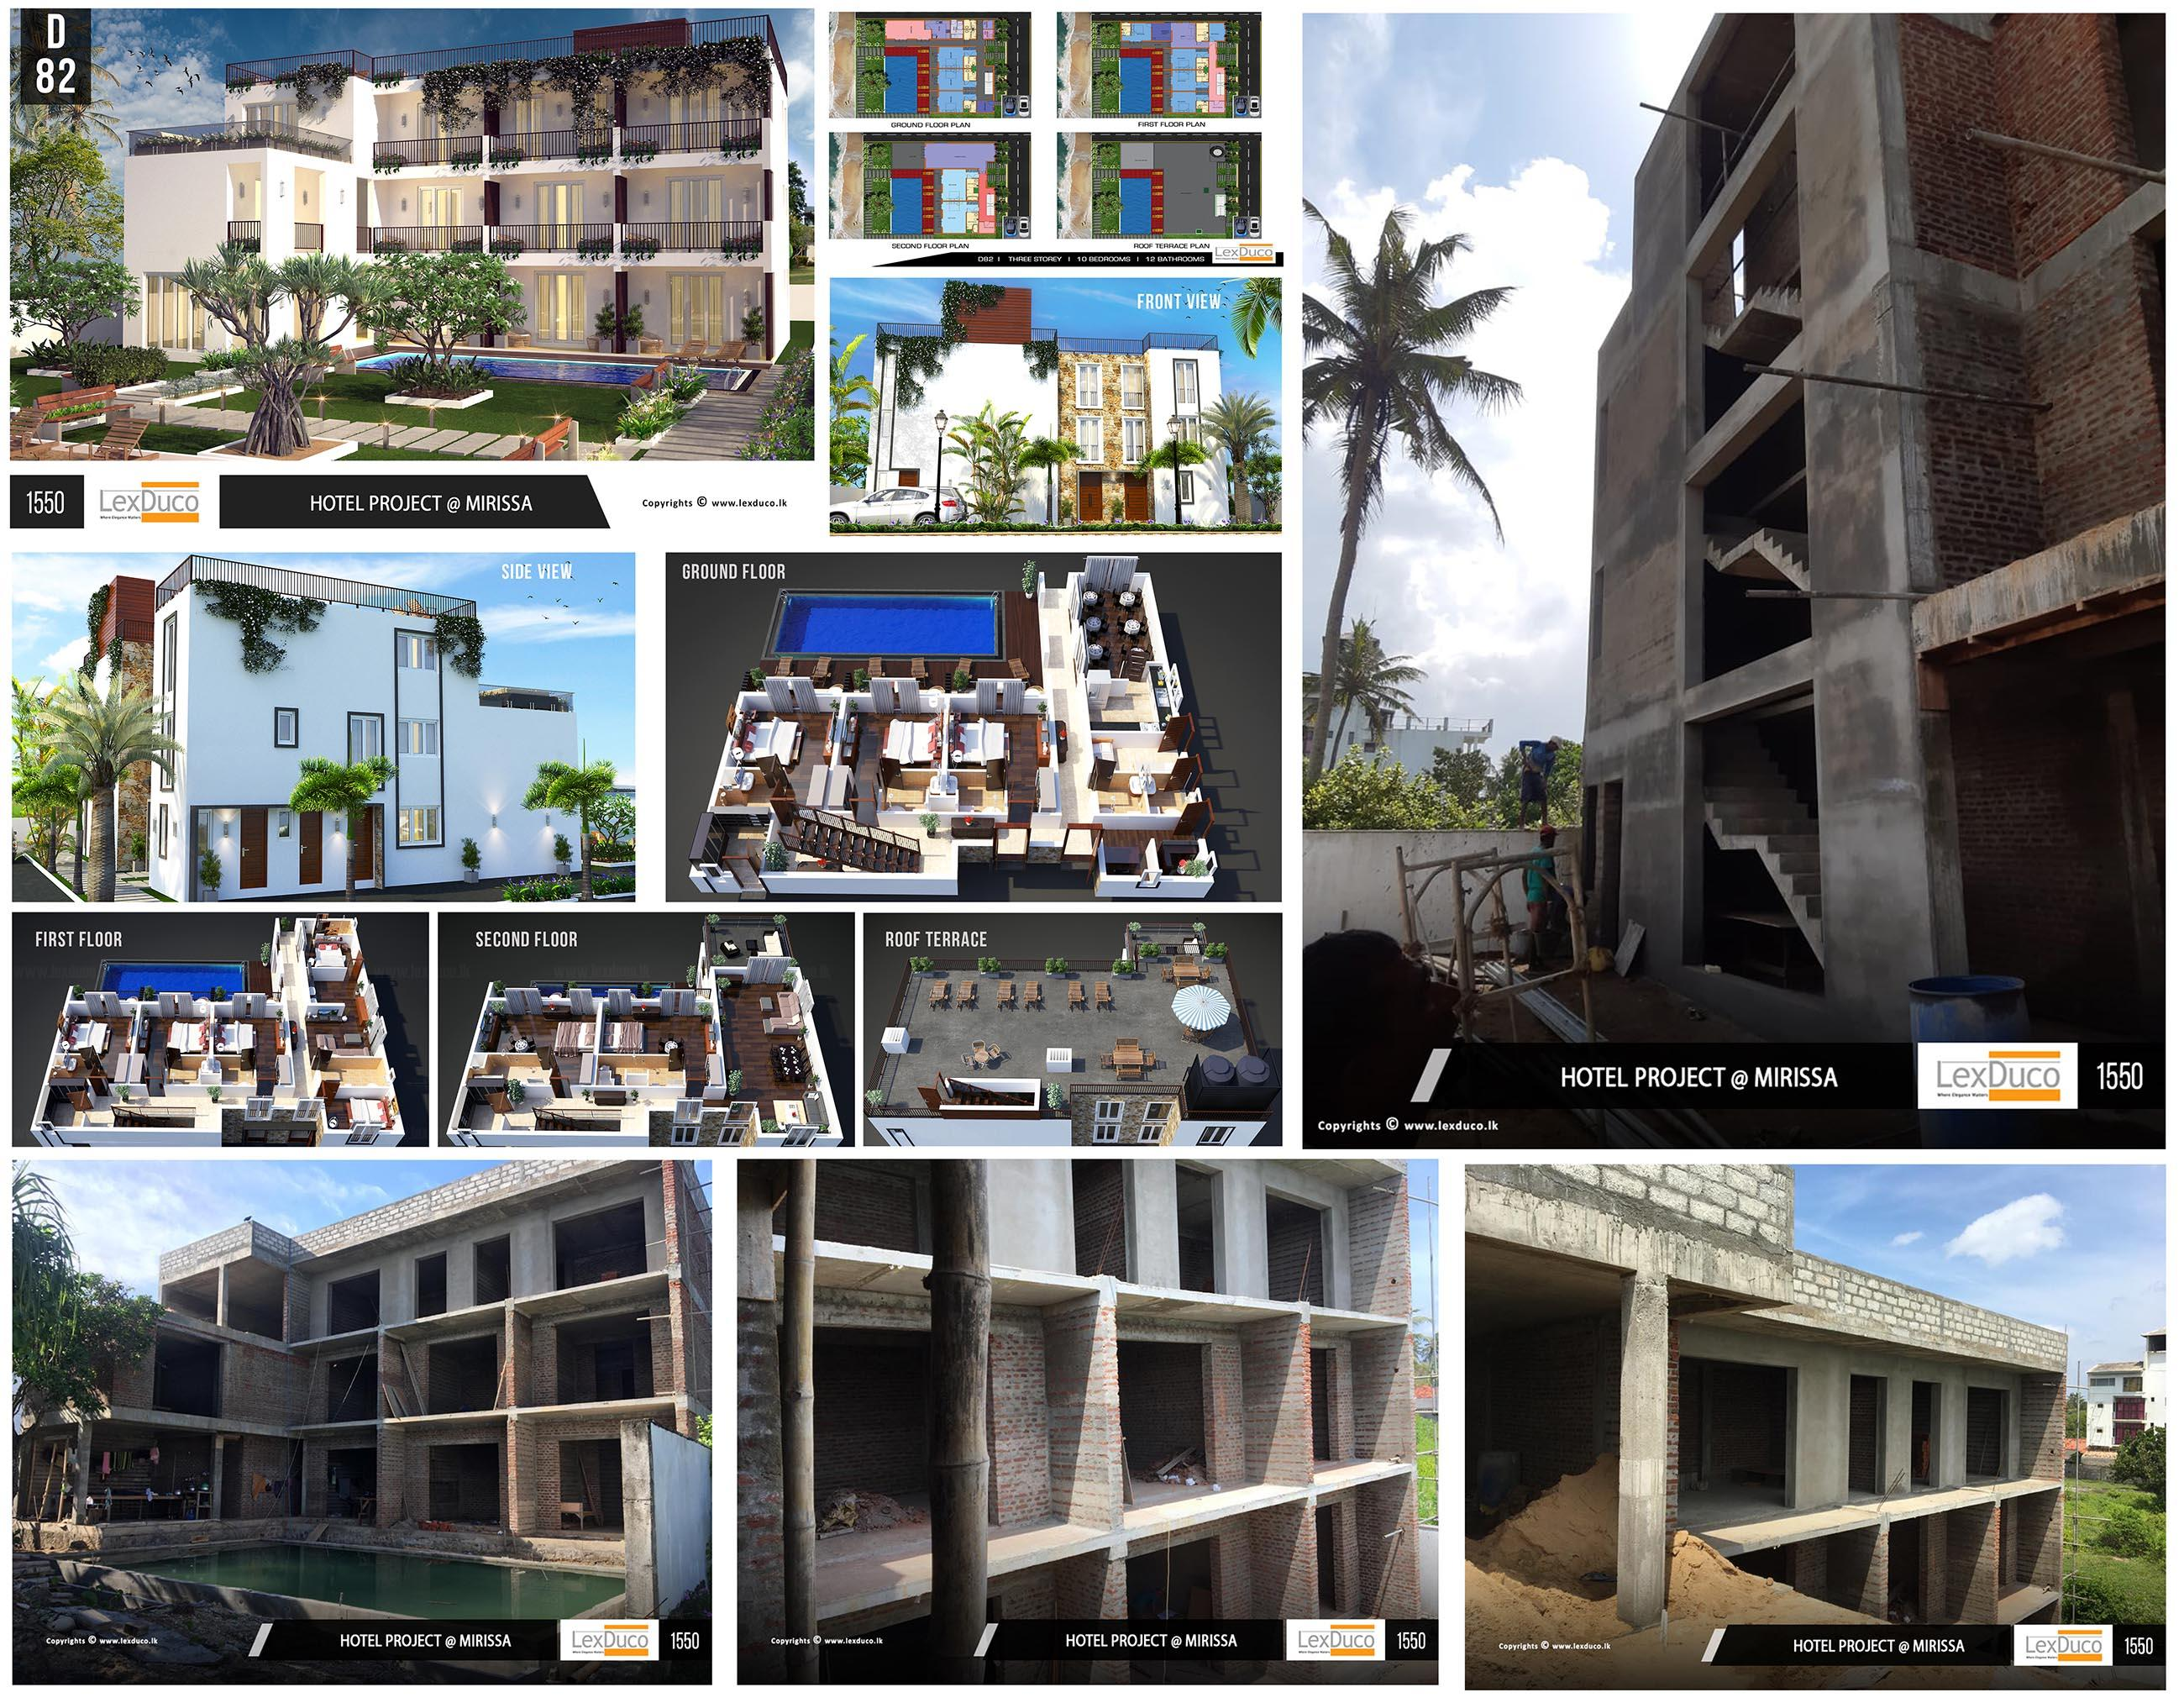 Hotel Project at Mirissa | Lex Duco